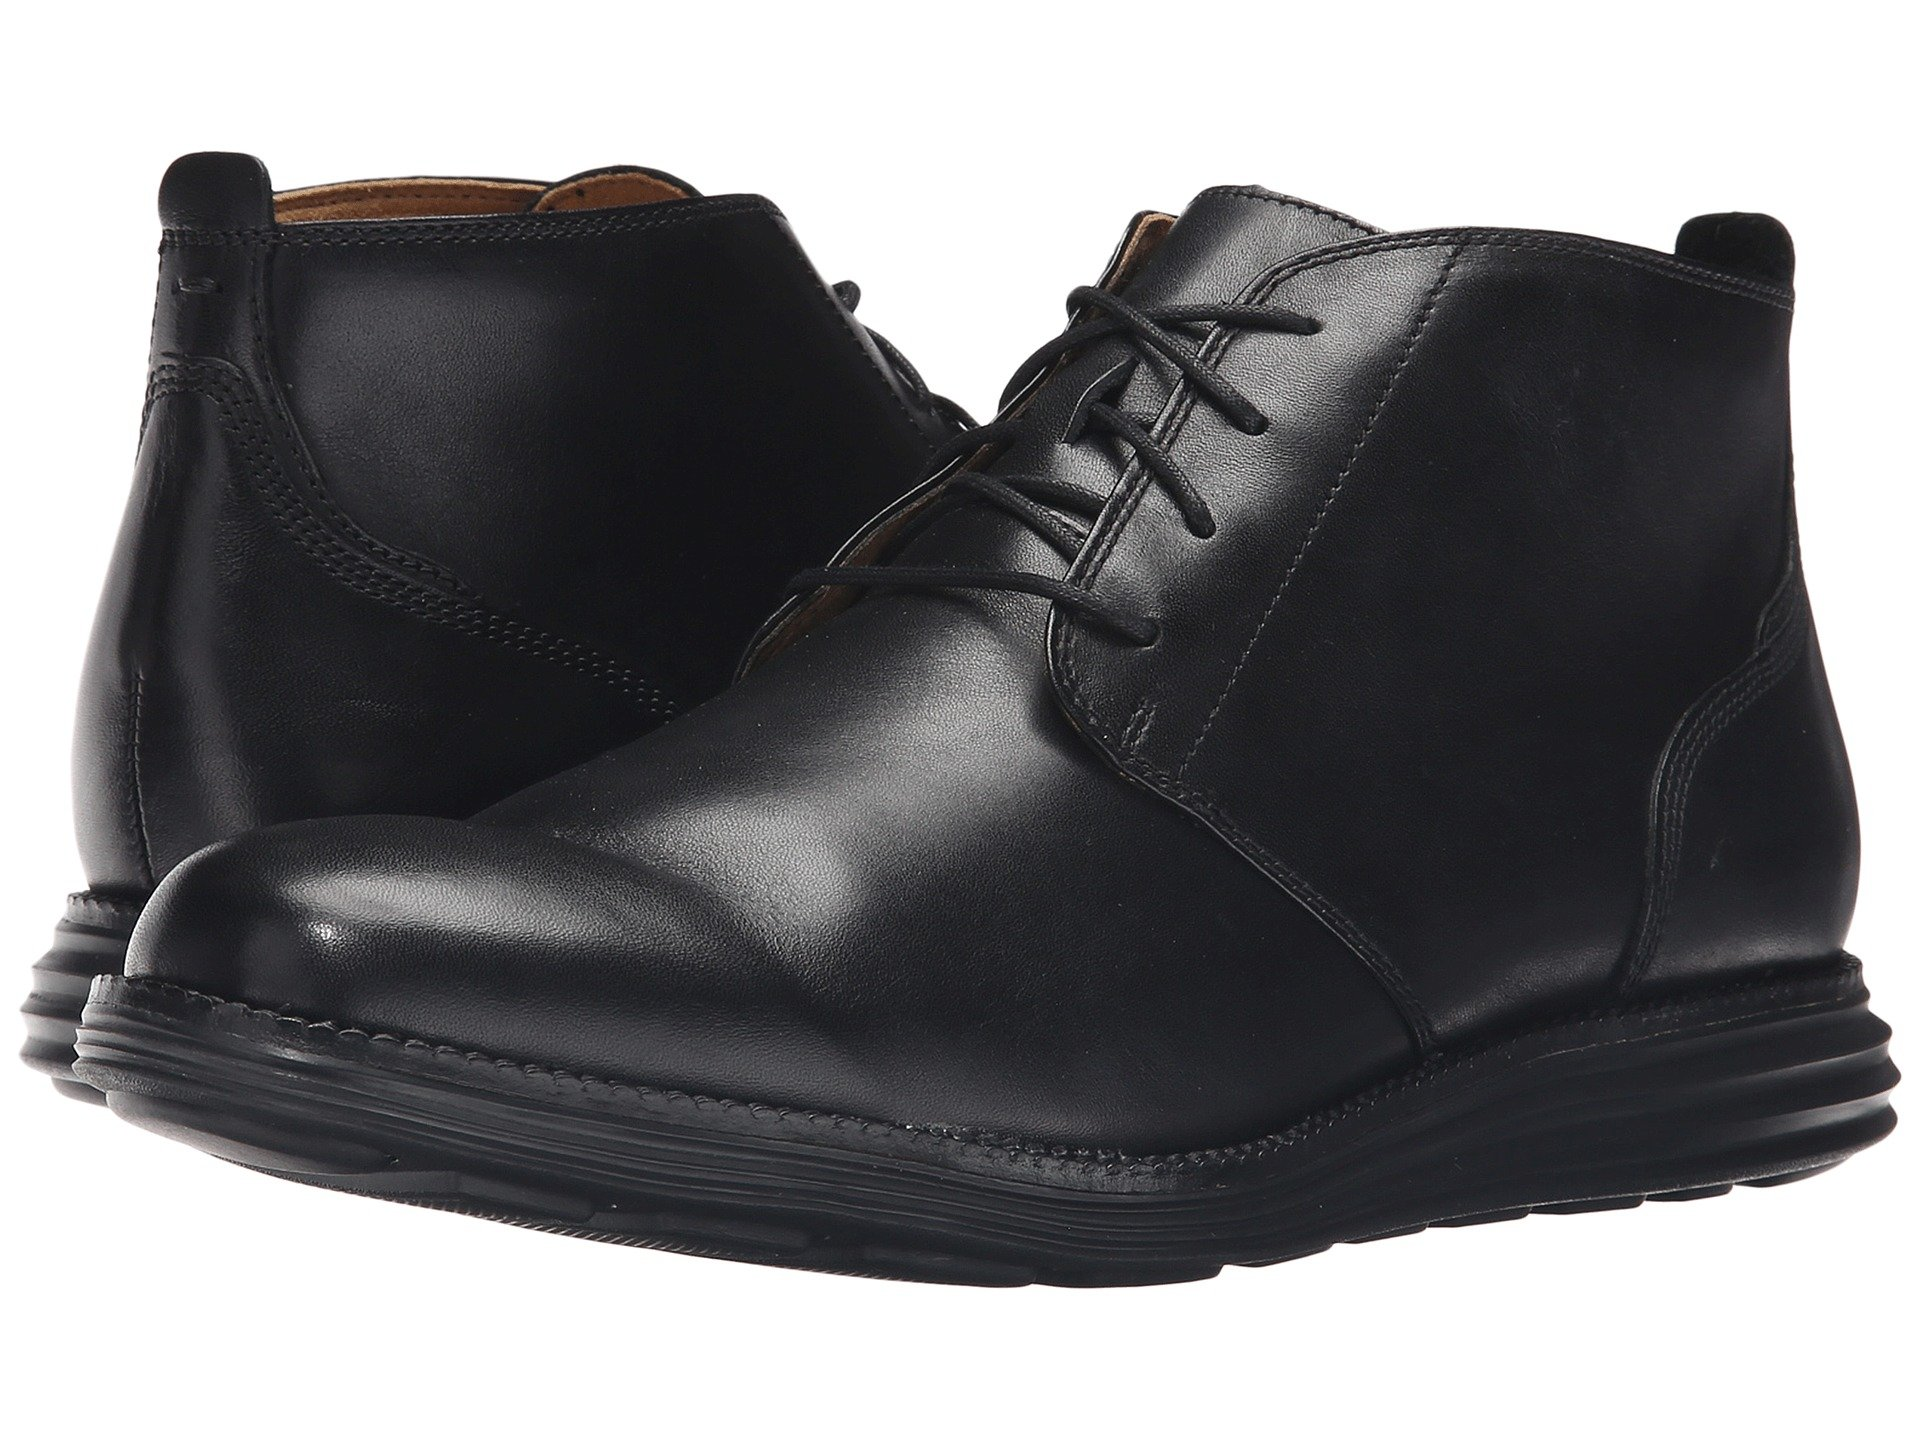 Cole haan lunargrand chukka black and white dresses